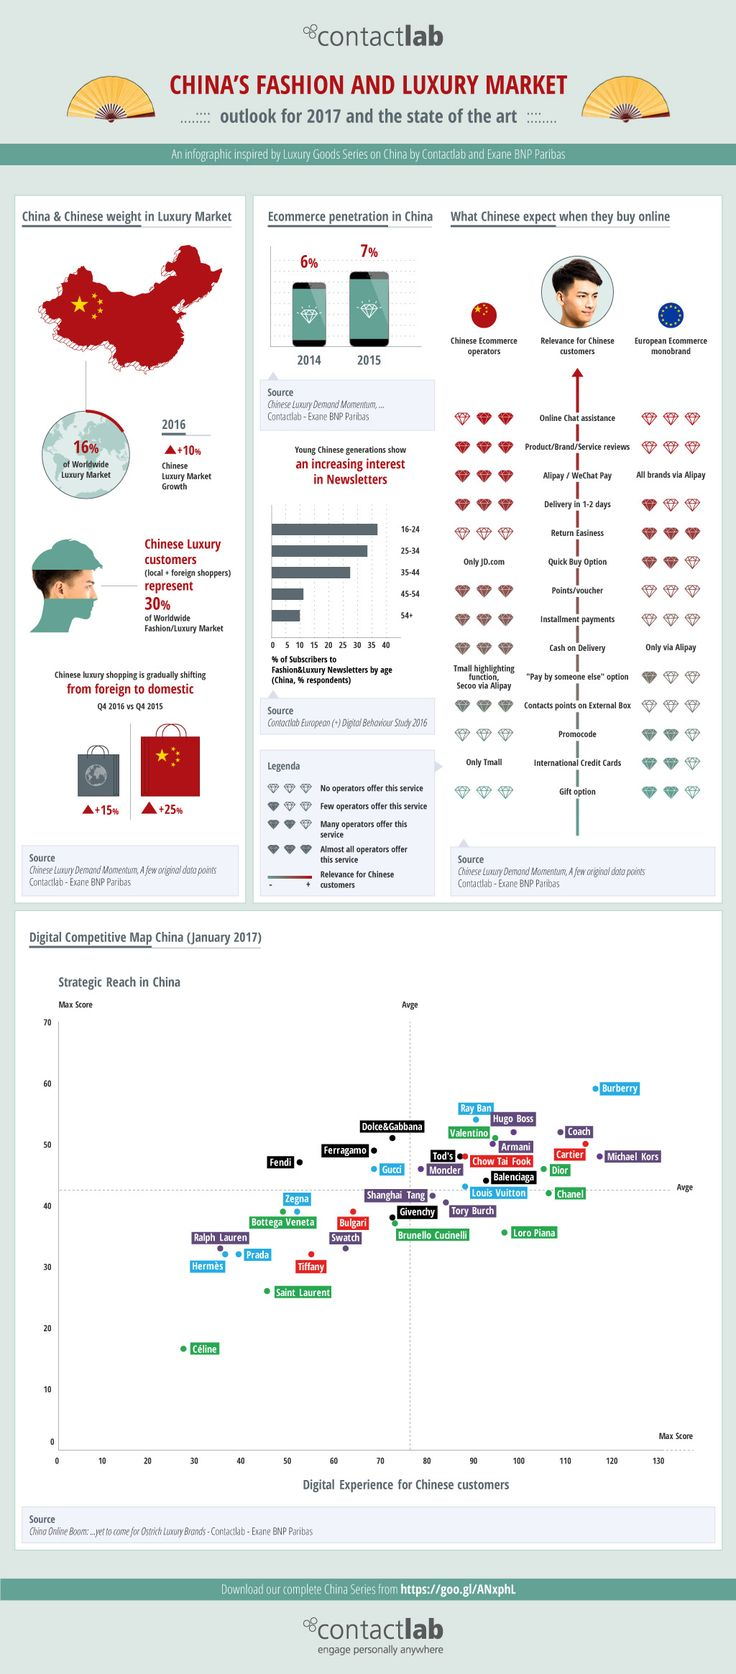 China's Fashion and Luxury Market: some market figures and key findings of the reports by Contactlab-Exane BNP Paribas